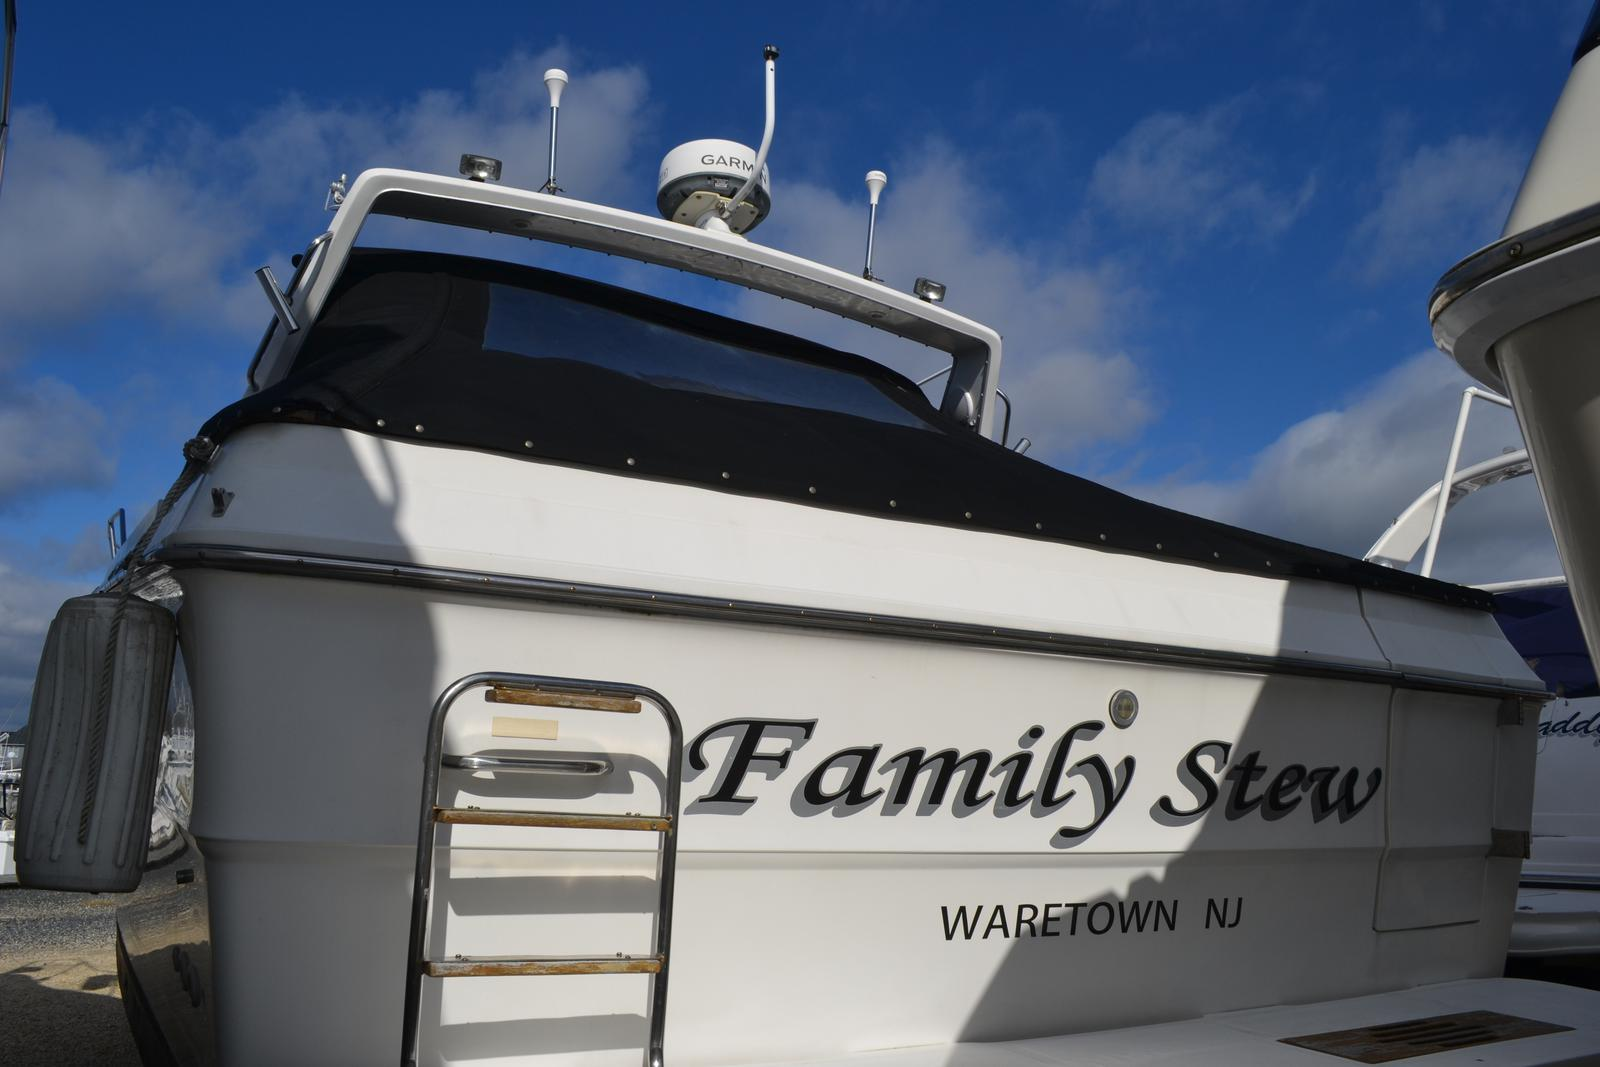 2010 Robalo 247 Dual Console For Sale In Waretown Nj Statewide Yamaha Compass Wiring Dsc 0218